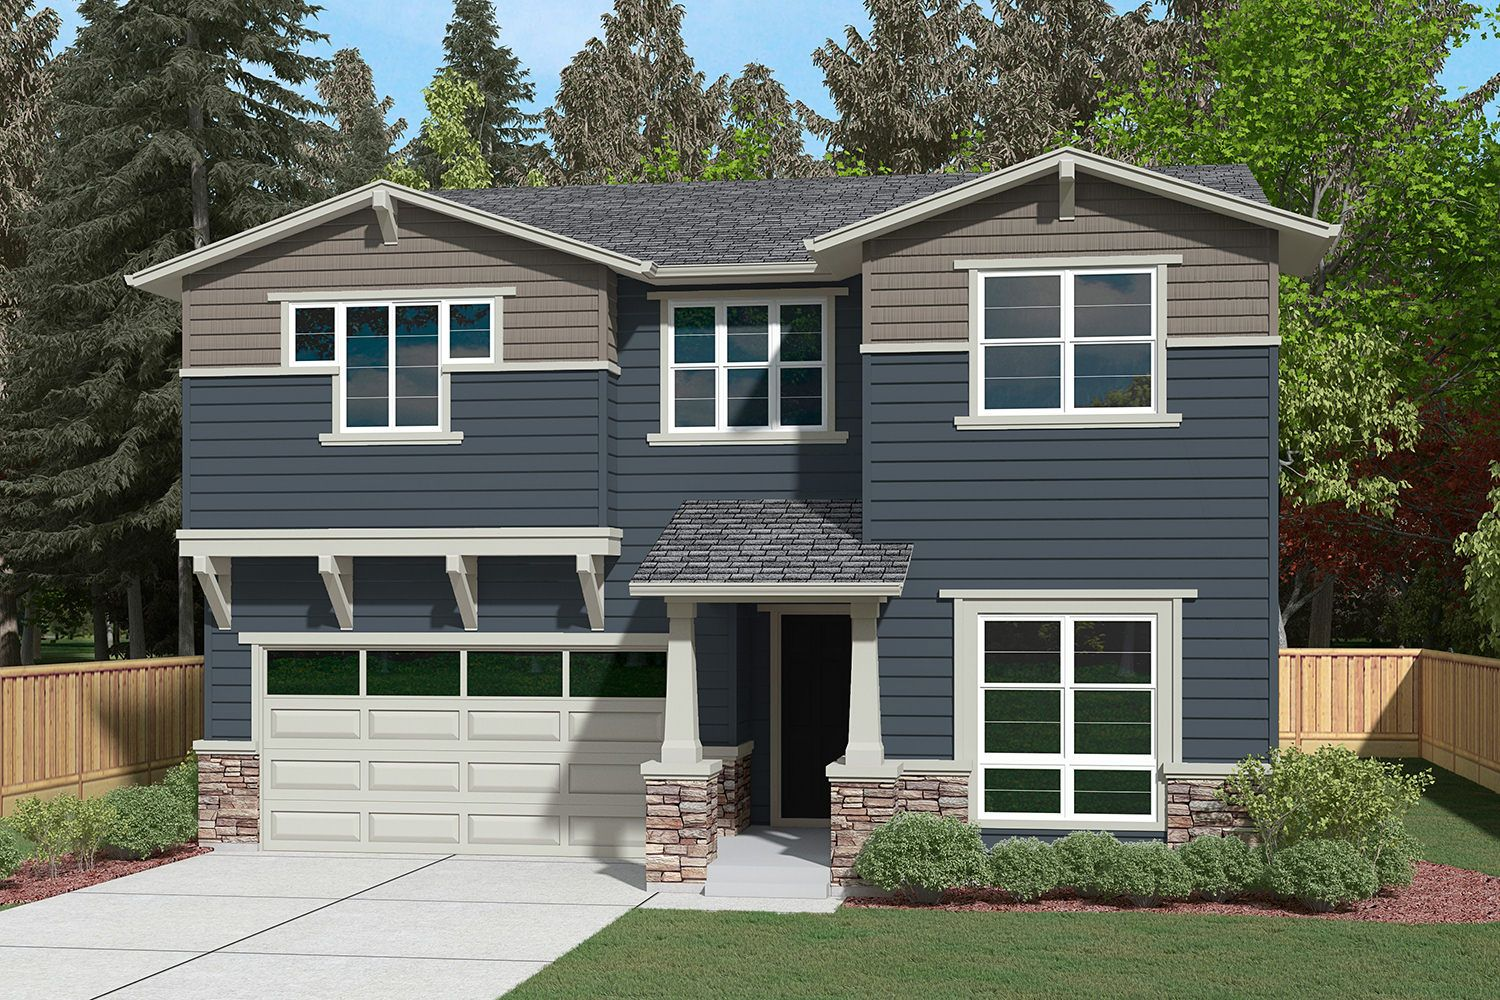 Single Family for Sale at Parkwood Terrace - Residence H-302 13599 Ne 205th St Woodinville, Washington 98072 United States